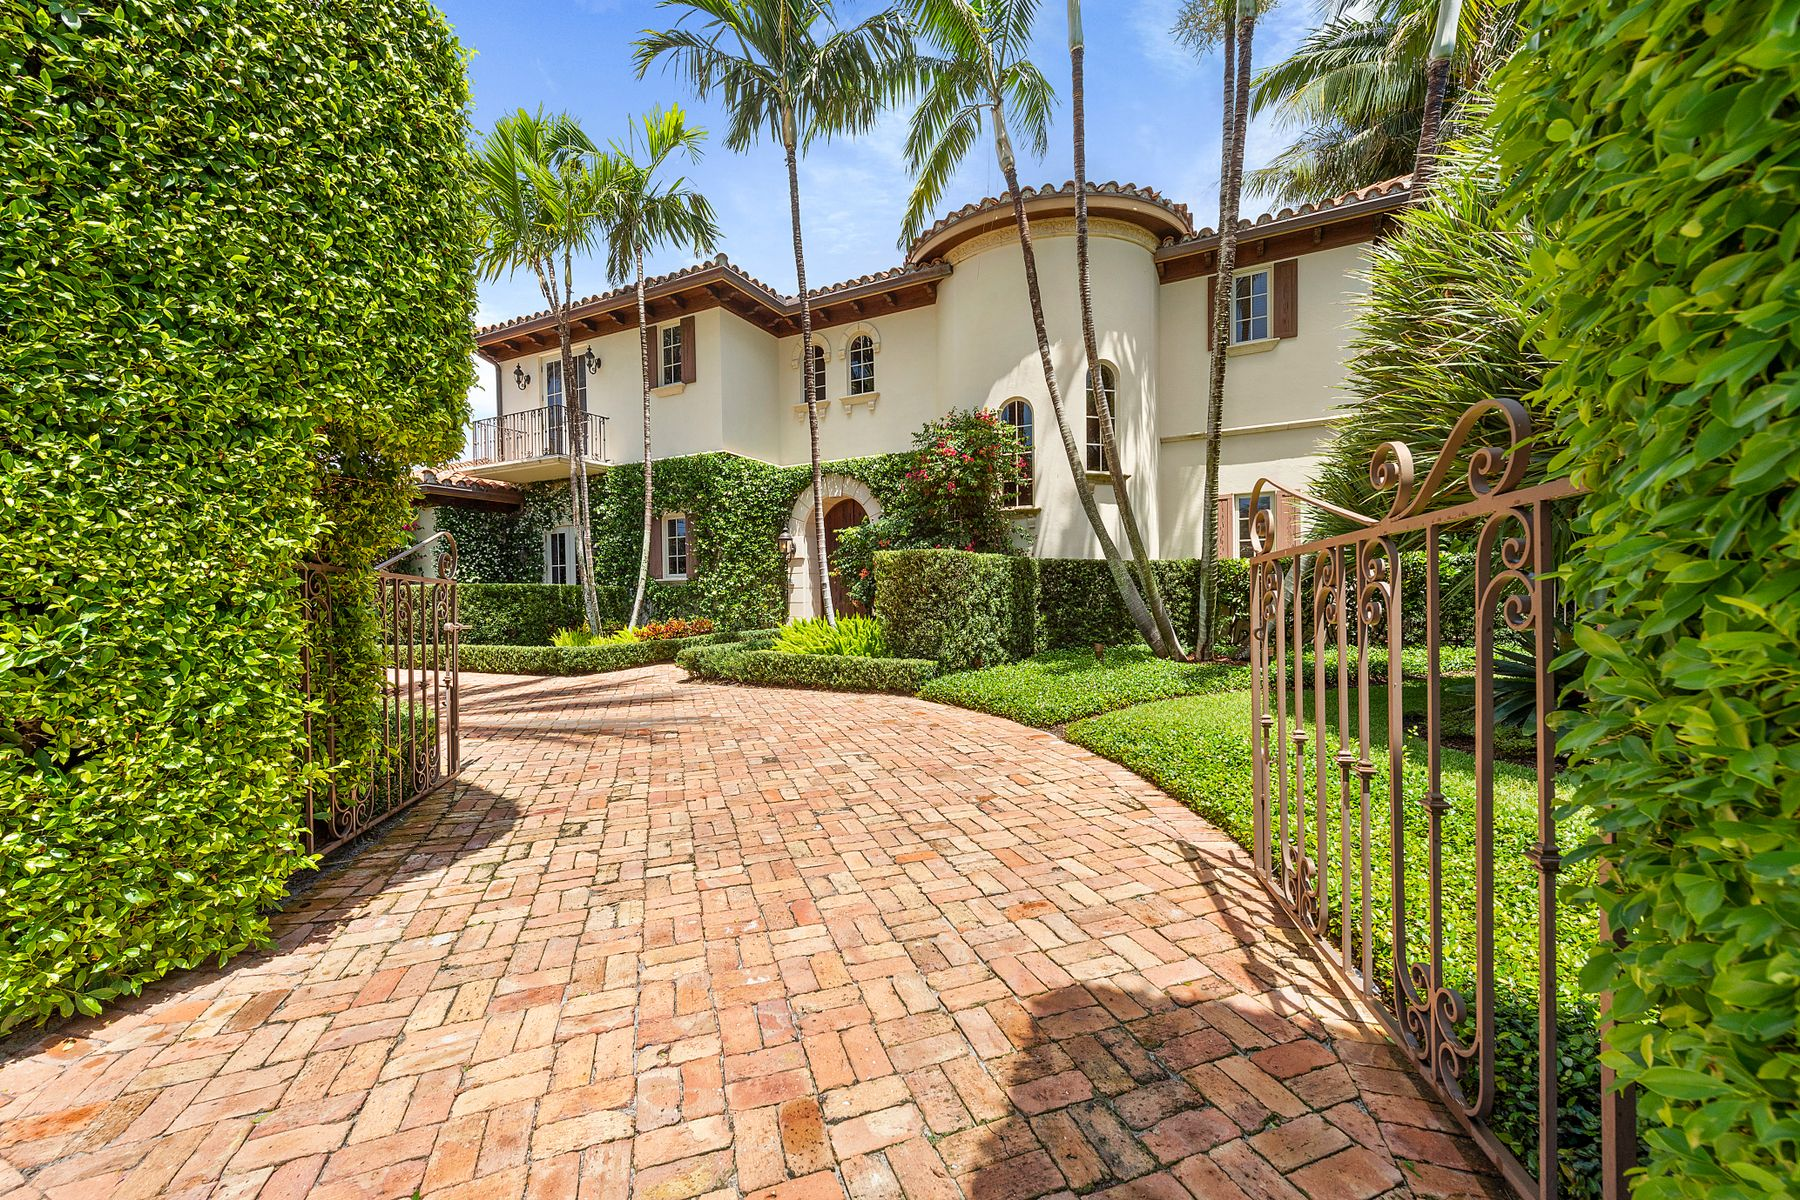 Single Family Homes for Sale at Ocean Block Mediterranean Estate 169 Everglade Ave, Palm Beach, Florida 33480 United States